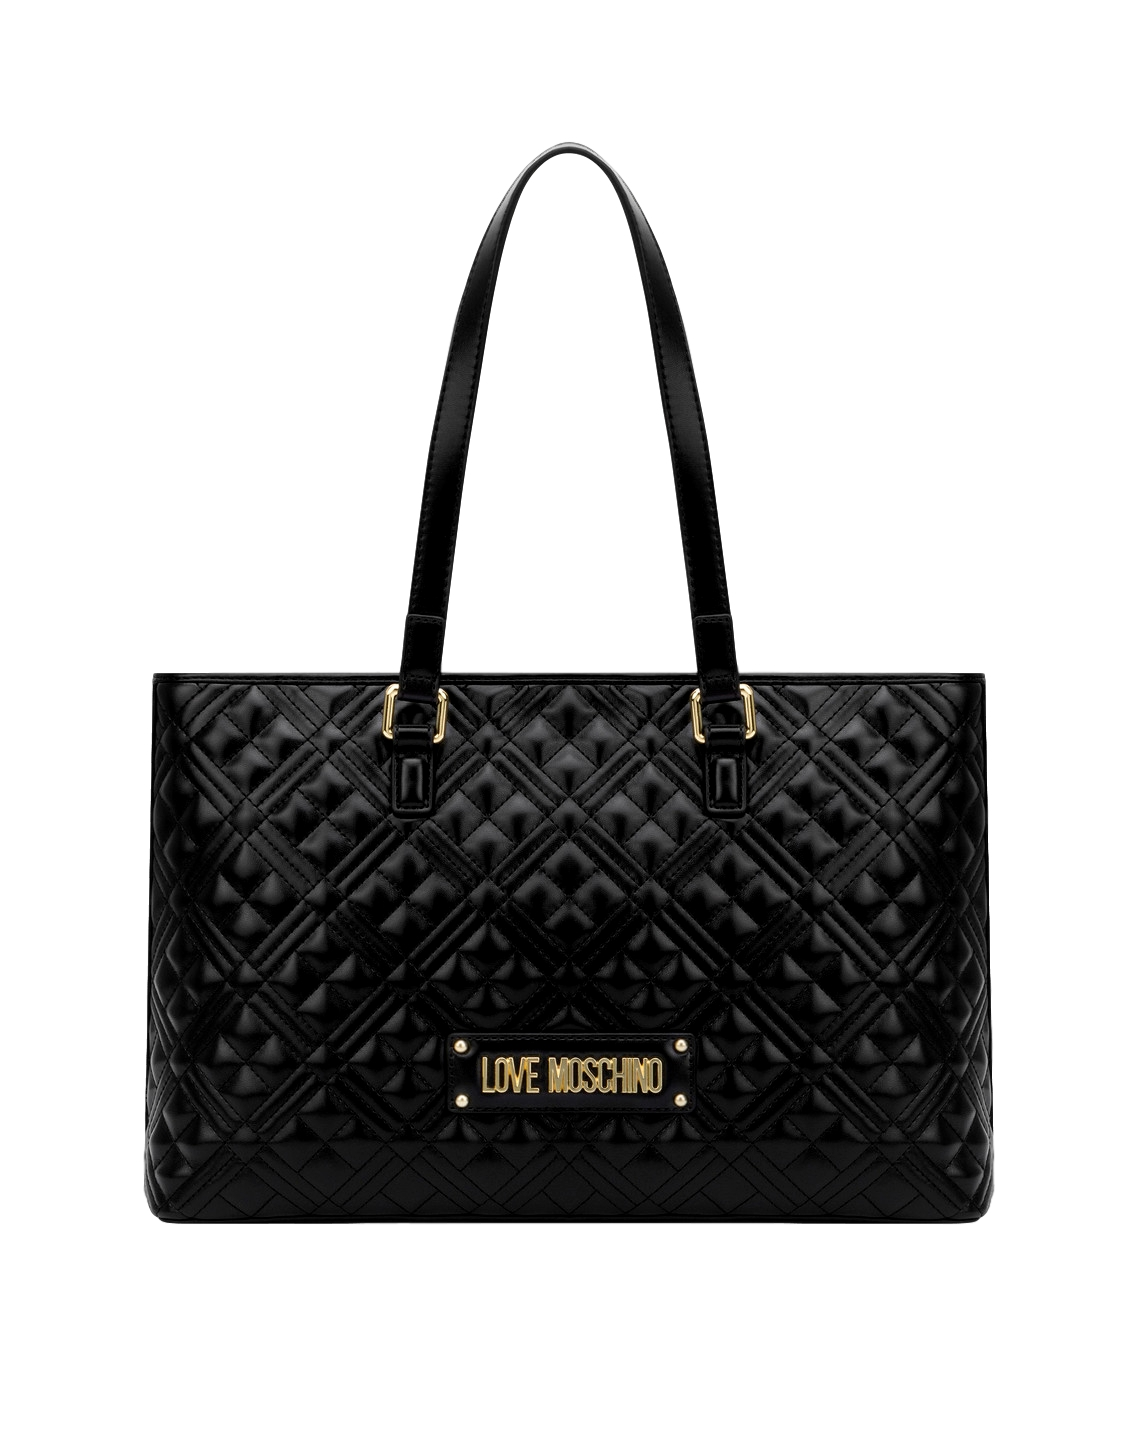 LOVE MOSCHINO P/E20 BORSA QUILTED NAPPA PU NERO JC4001PP1ALA0000 SHOPPER